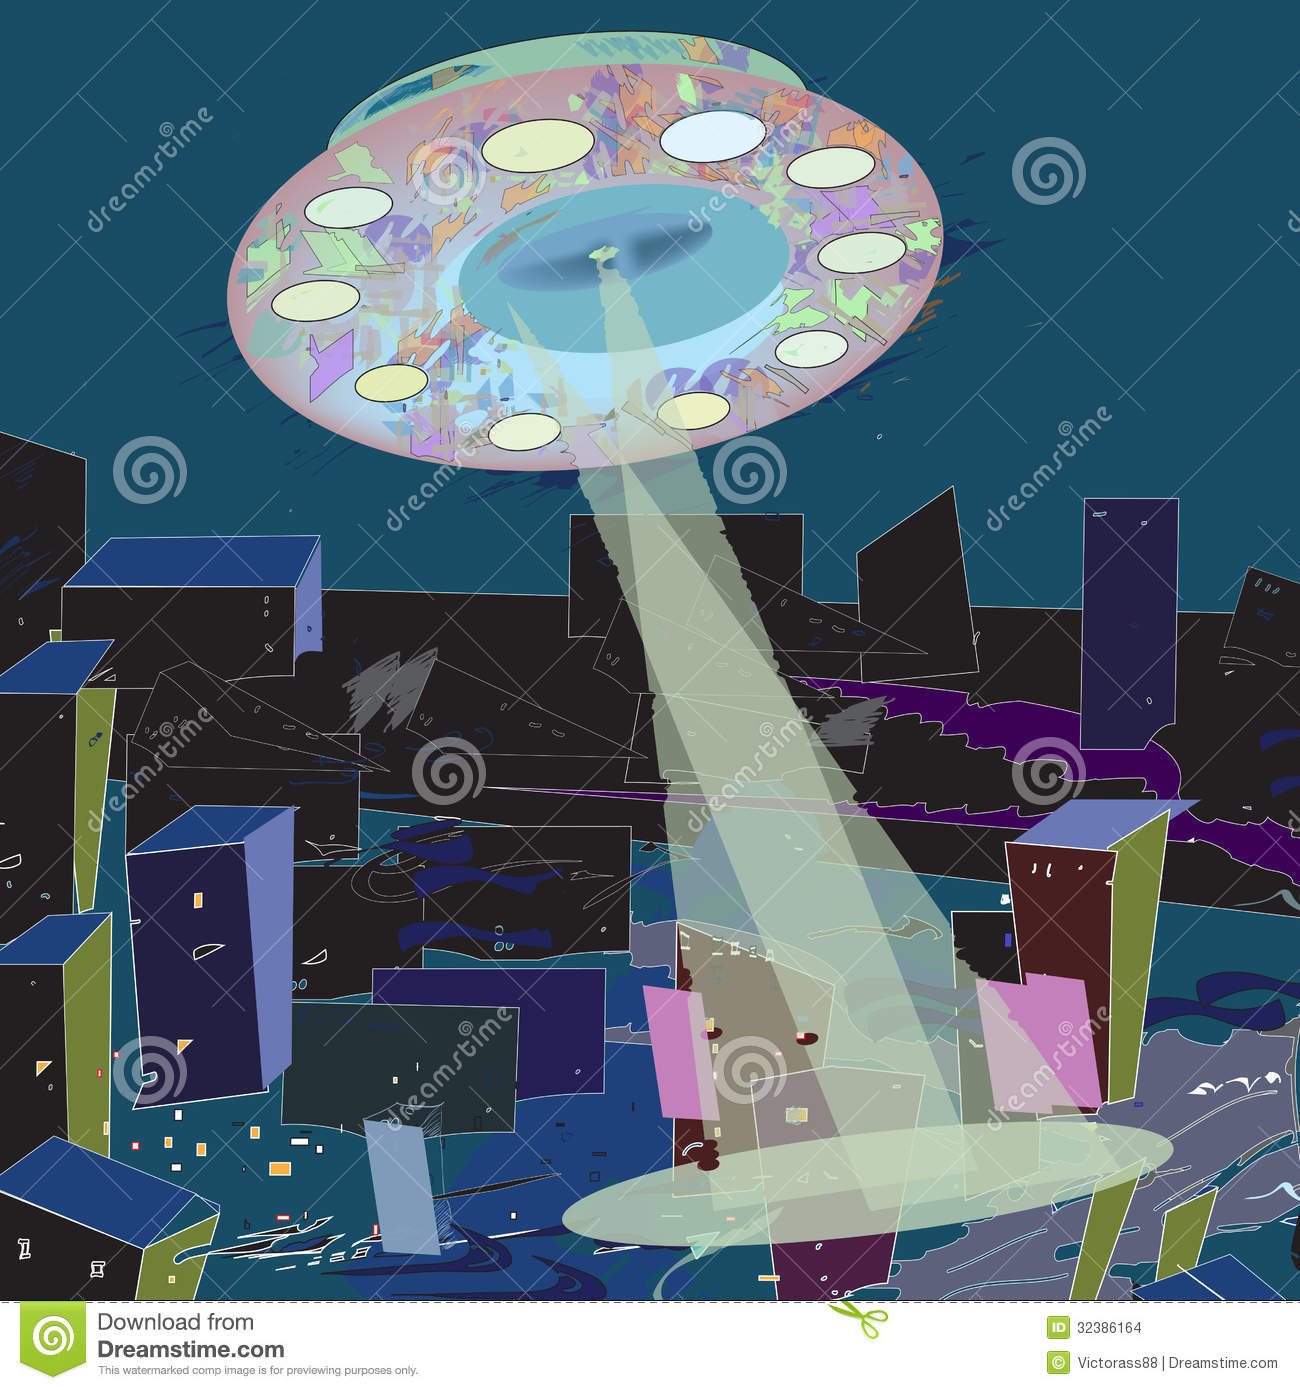 Ufo beaming destroyed city illustration and vector.